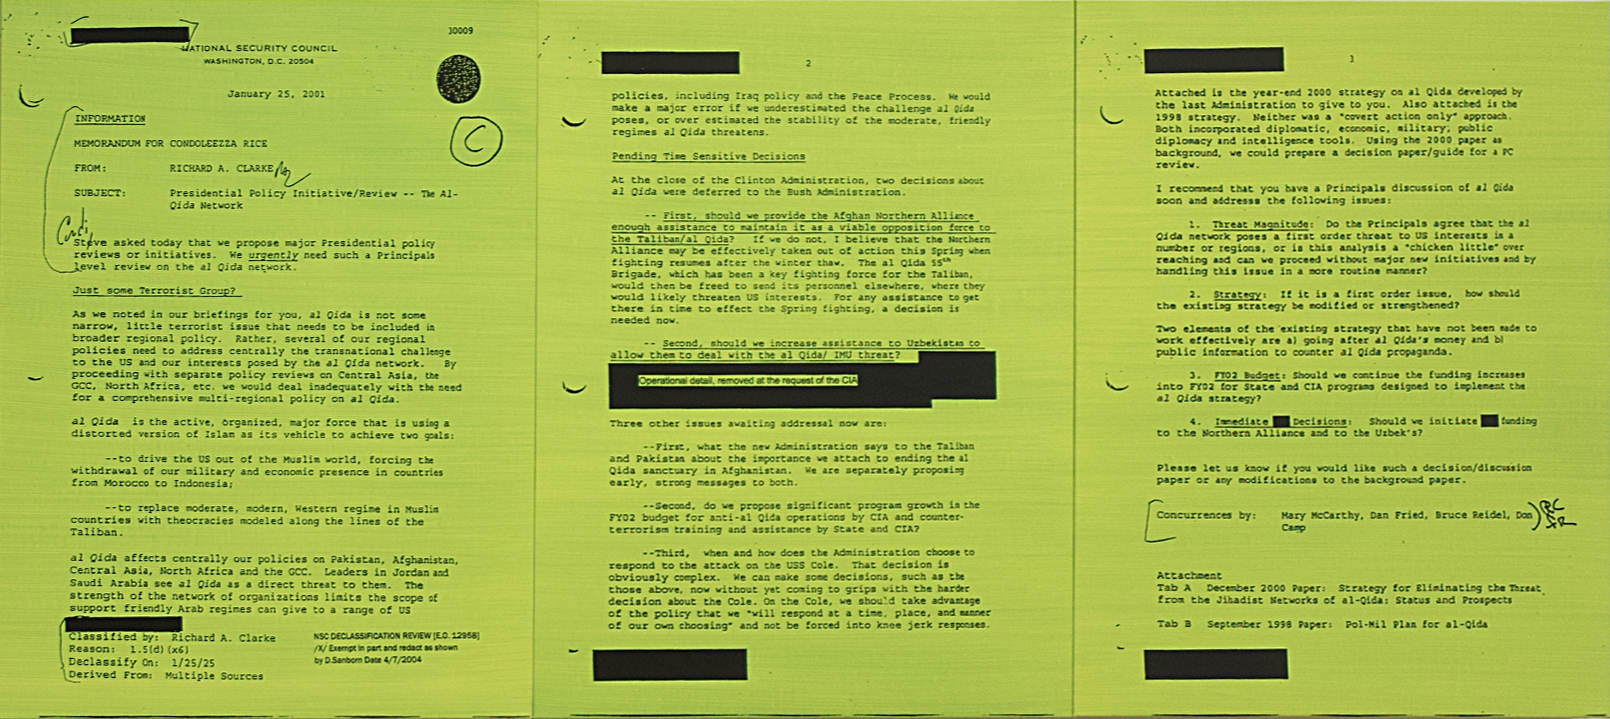 MEMORANDUM FOR CONDOLEEZZA RICE GREEN, by Jenny Holzer, 2006